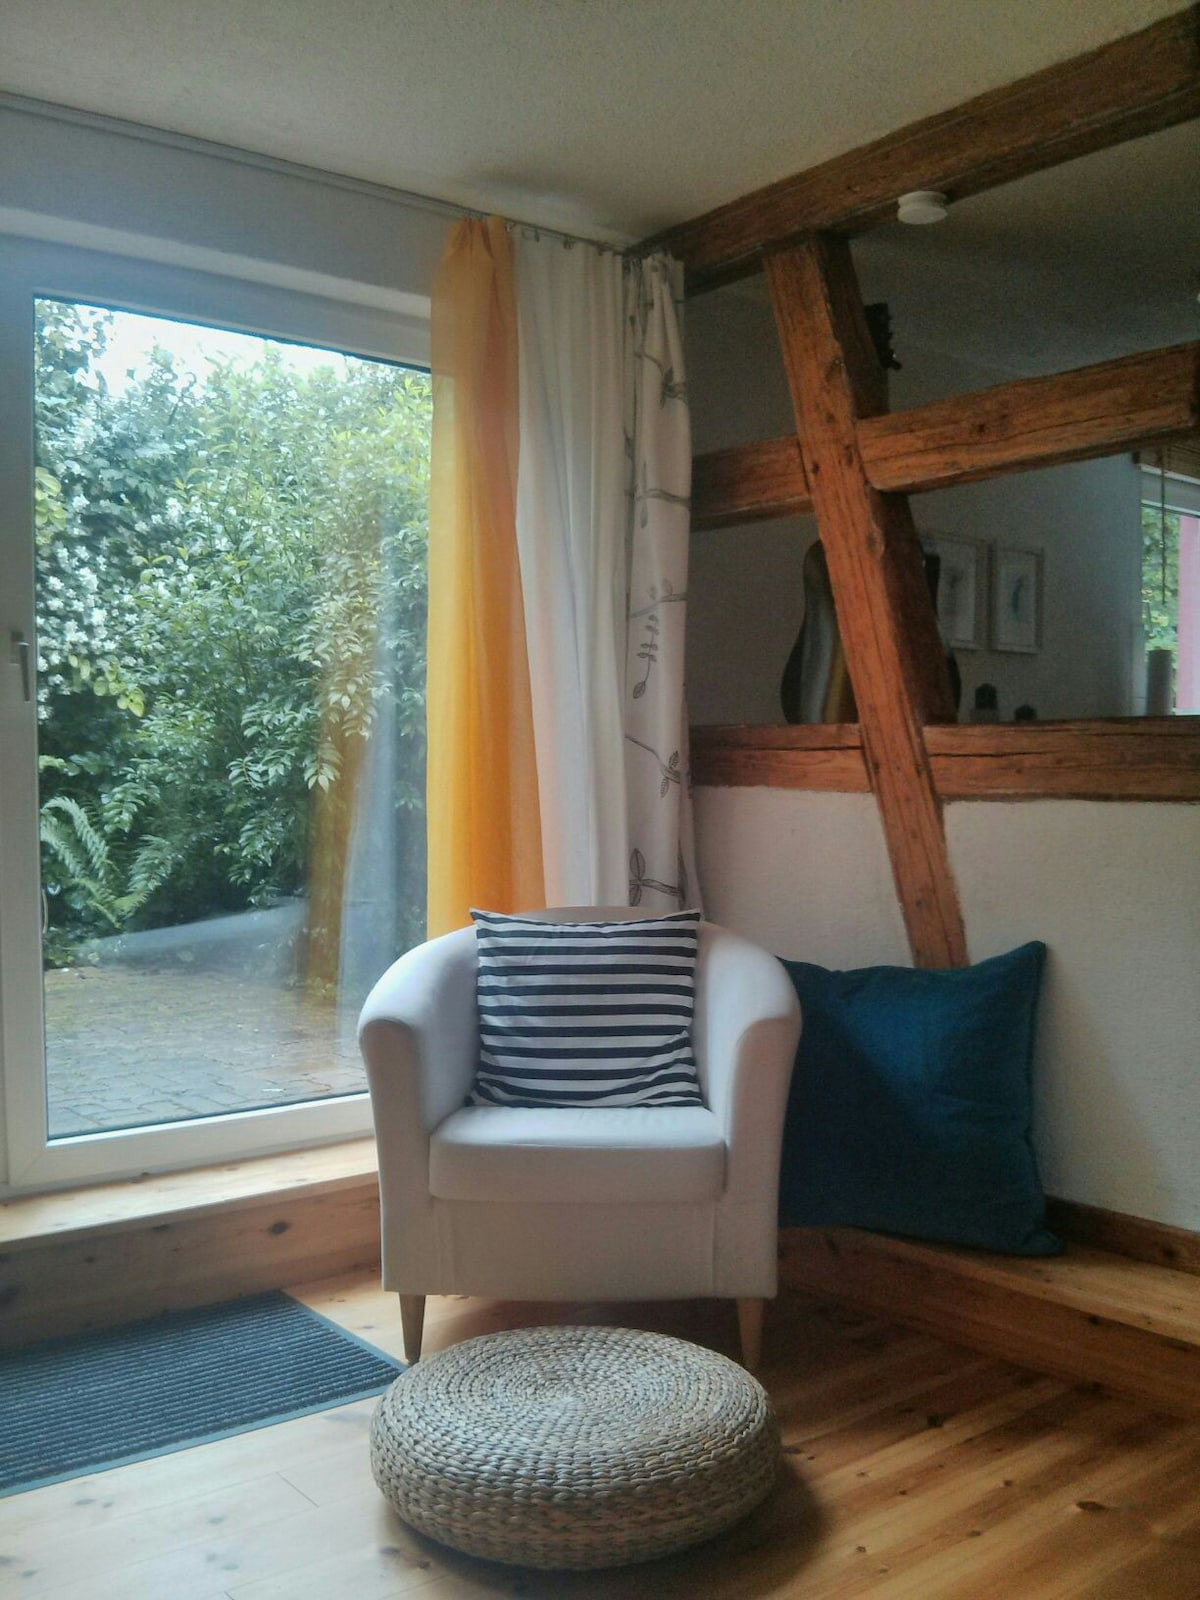 Bed And Breakfasts In Obernbreit